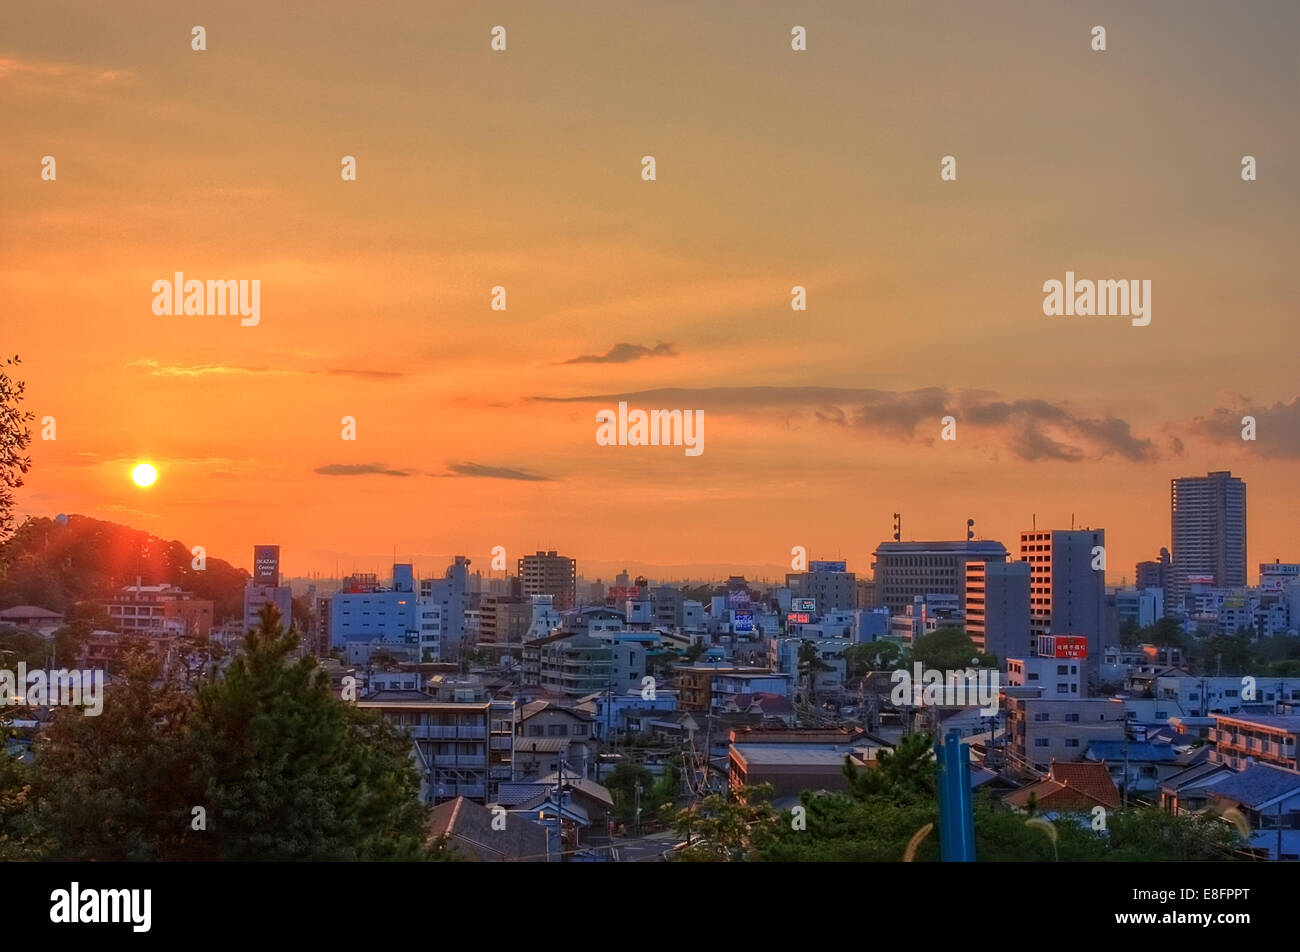 Sunset over city skyline, Okazaki, Chita, Japan - Stock Image